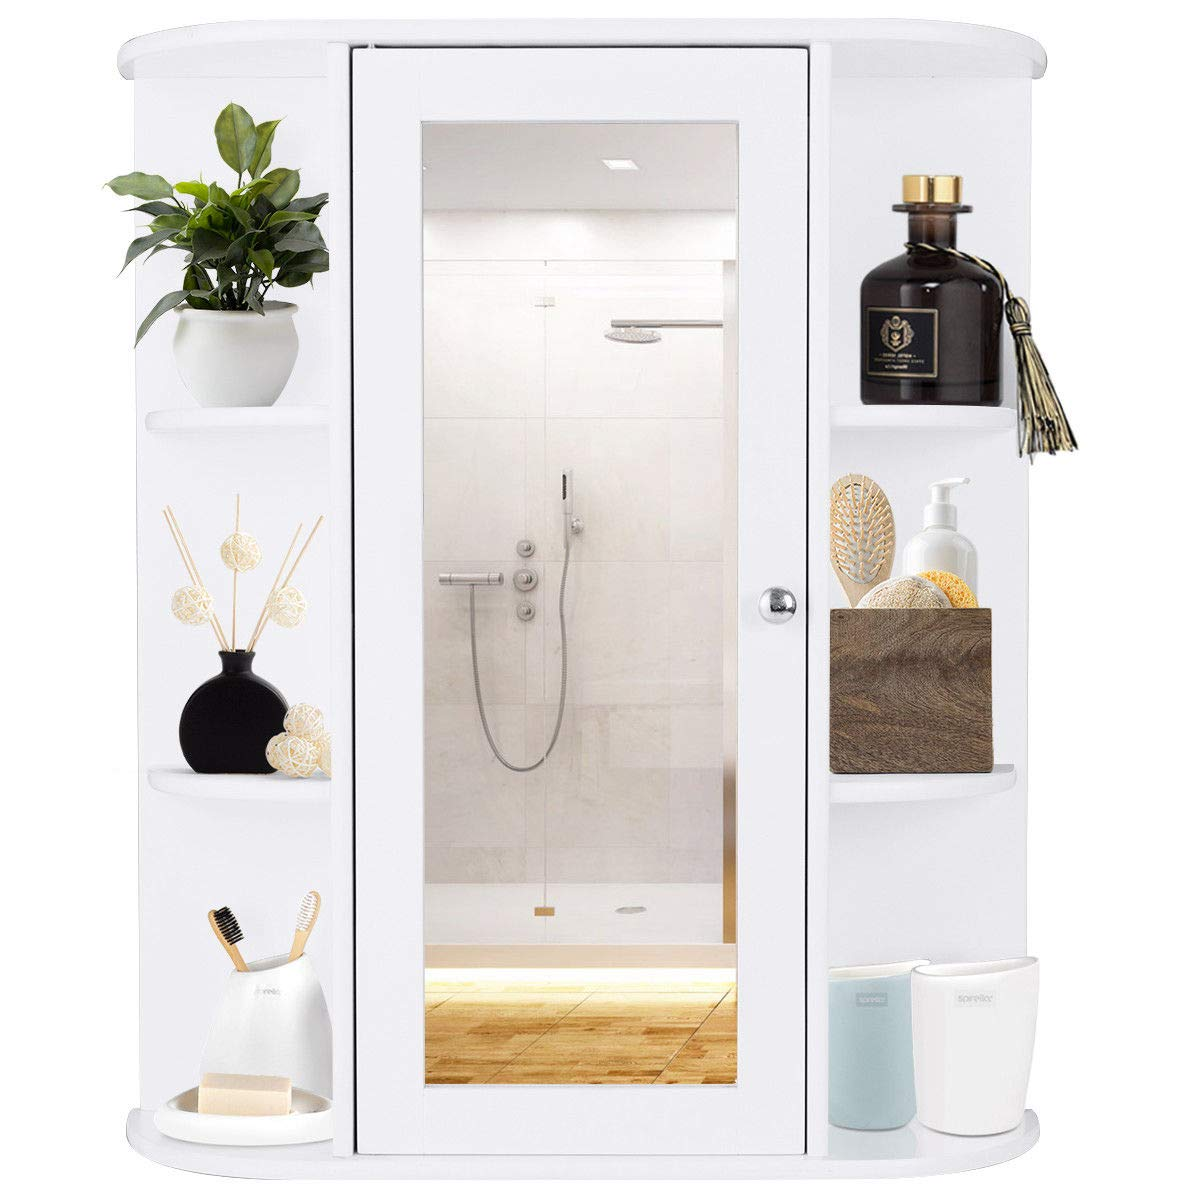 TANGKULA Bathroom Cabinet Single Door Wall Mount with Mirror Organizer Storage Cabinet(2 Tier Inner Shelves) by TANGKULA (Image #4)